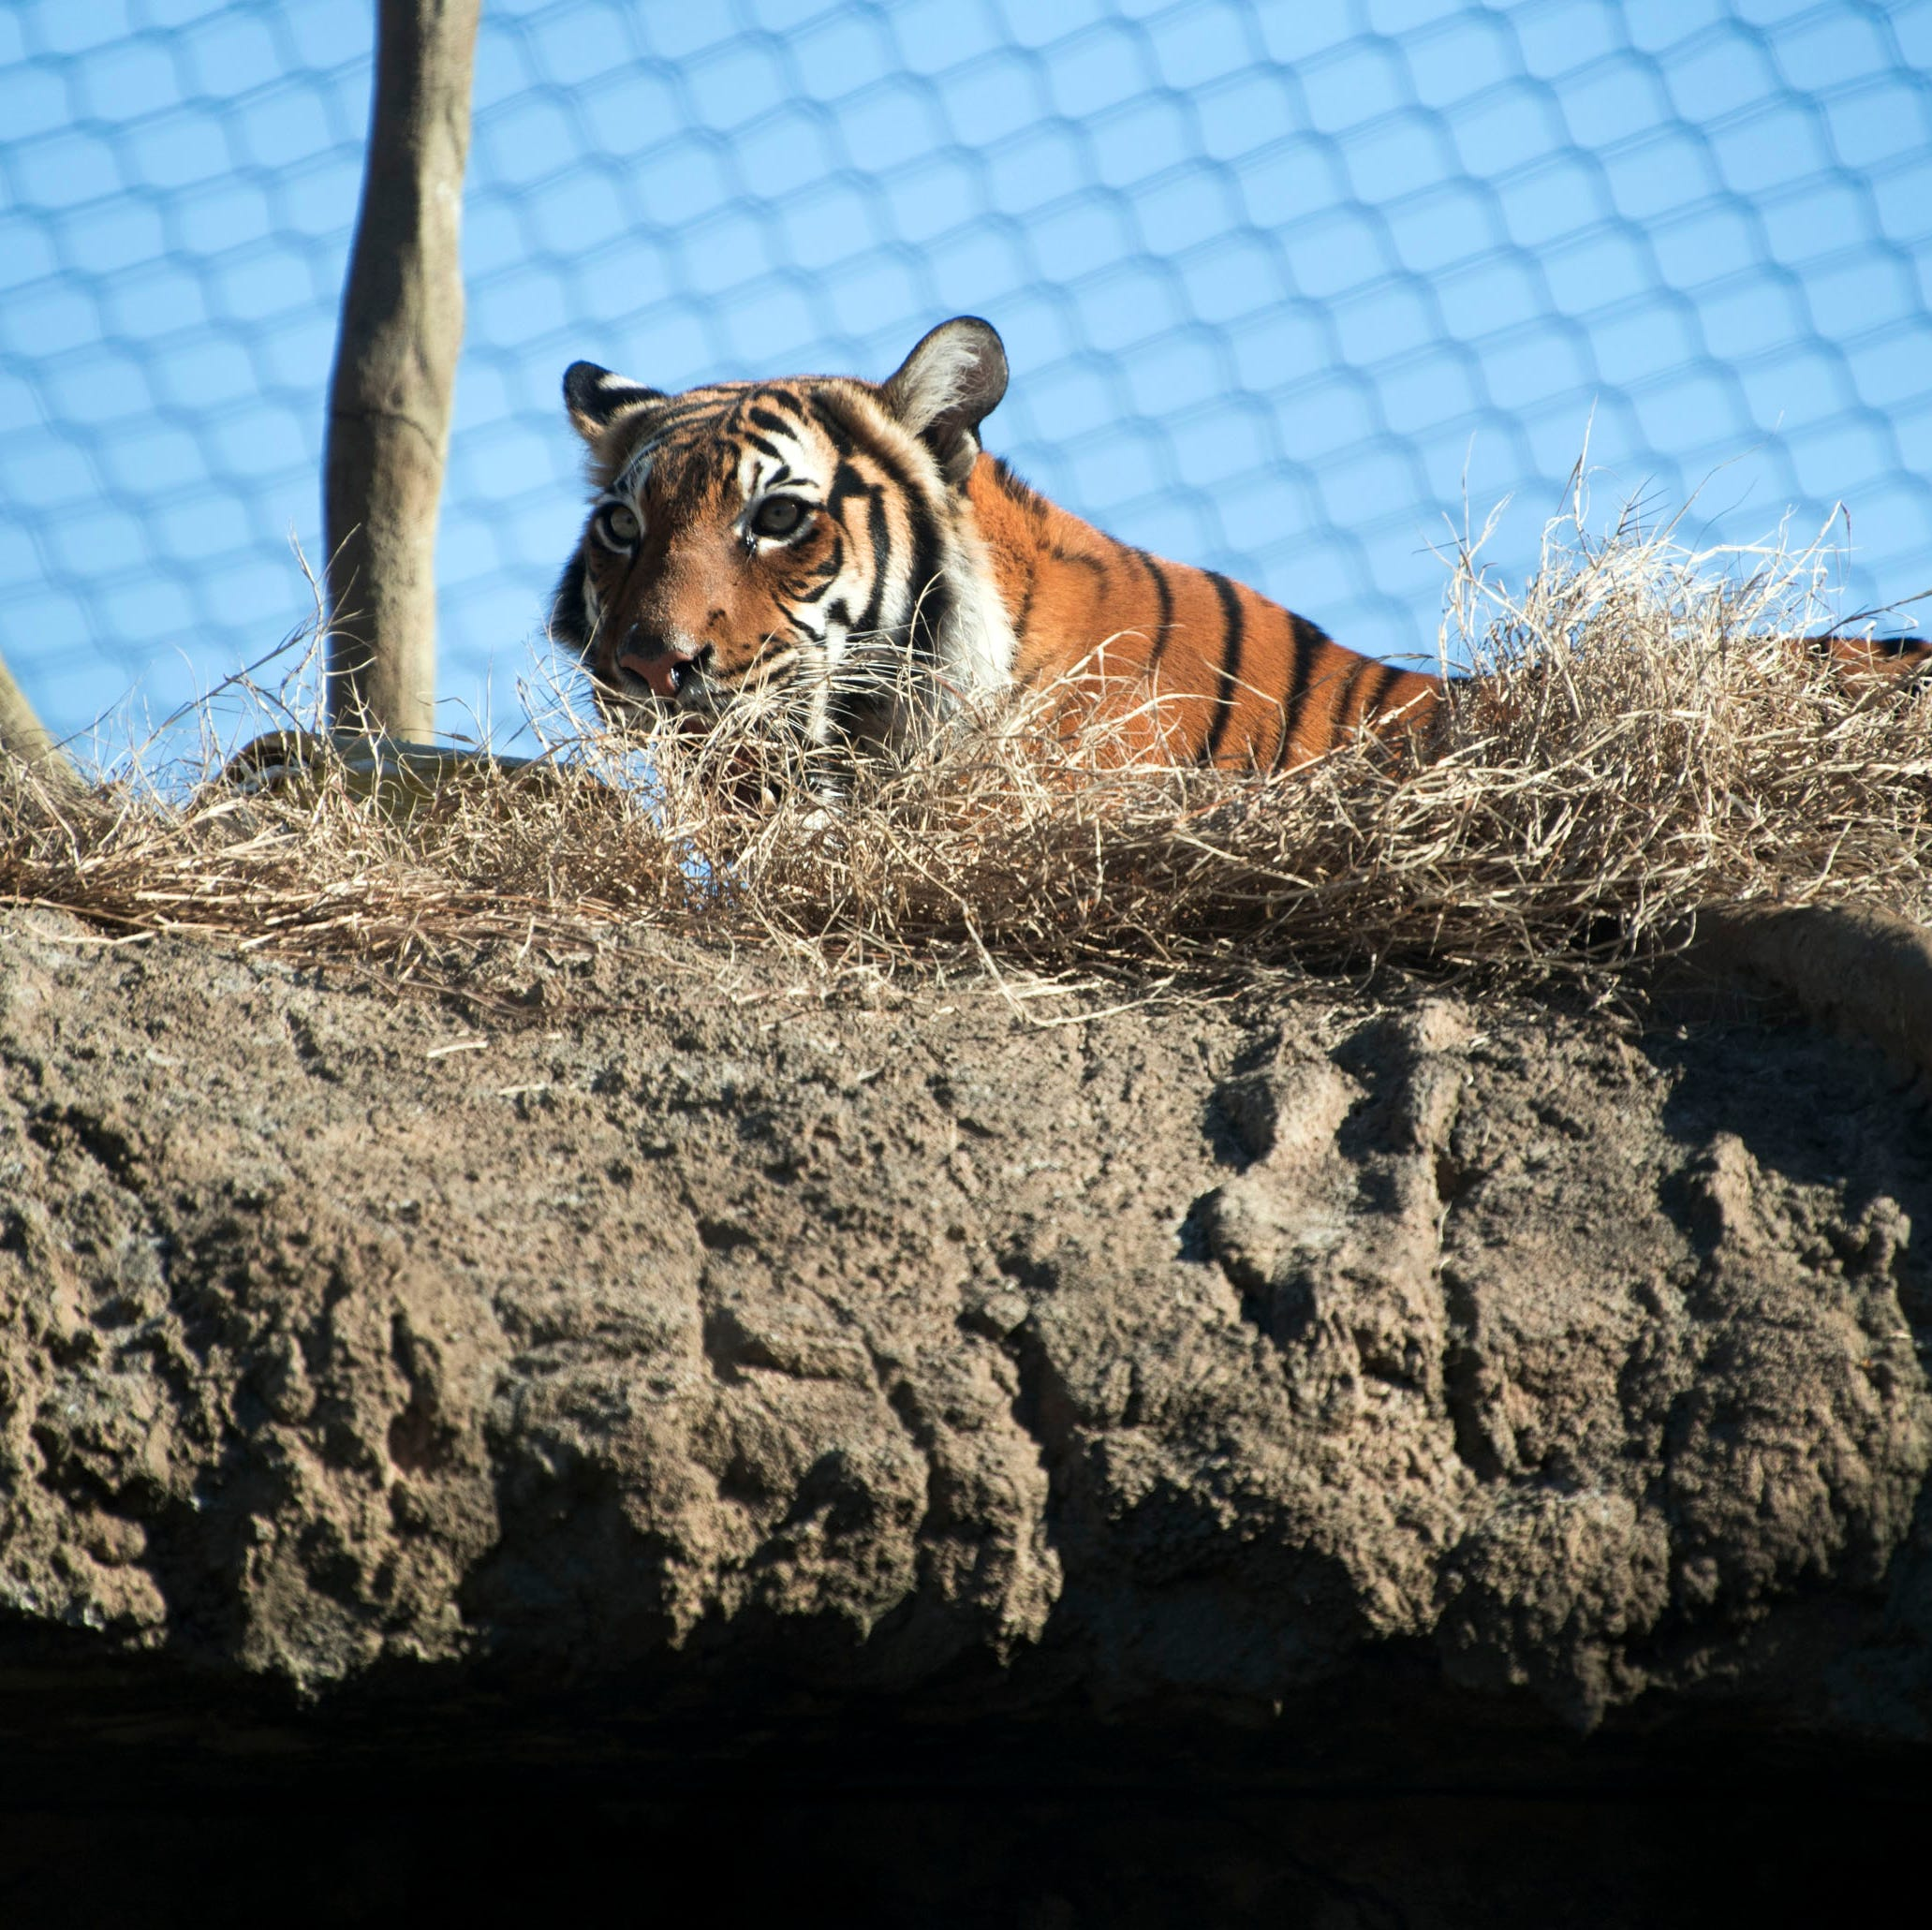 Gold glitter, science and longing glances: Zoo Knoxville hopes rare tigers become parents